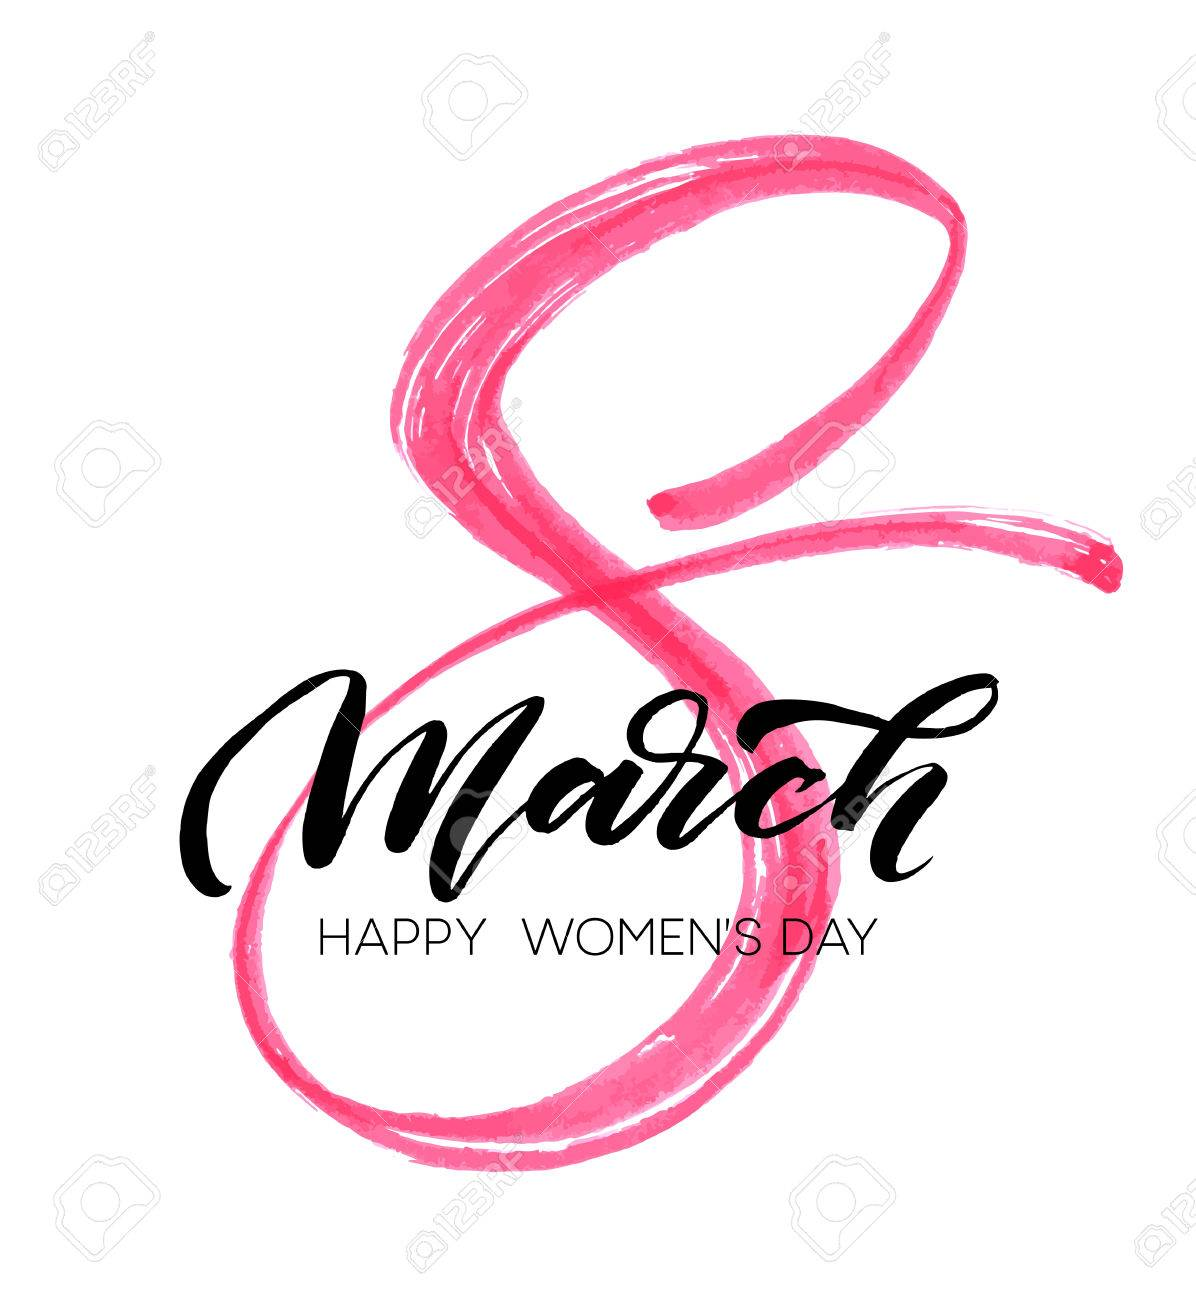 March 8 Happy womans day watercolor lettering greeting card. Vector illustration - 71234375